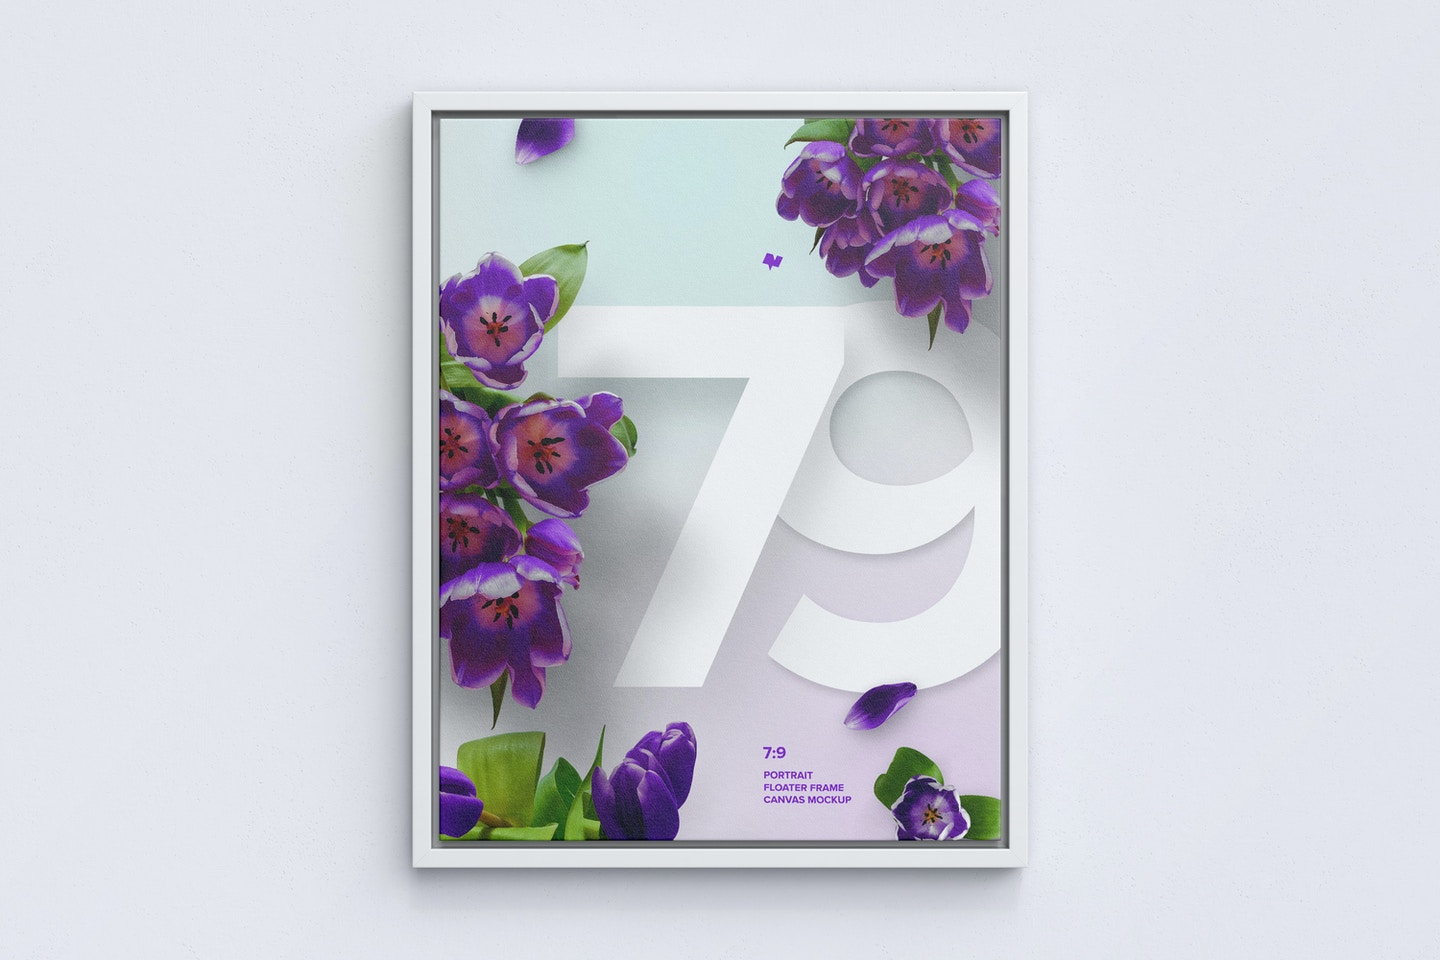 7:9 Portrait Canvas Mockup in Floater Frame, Front View